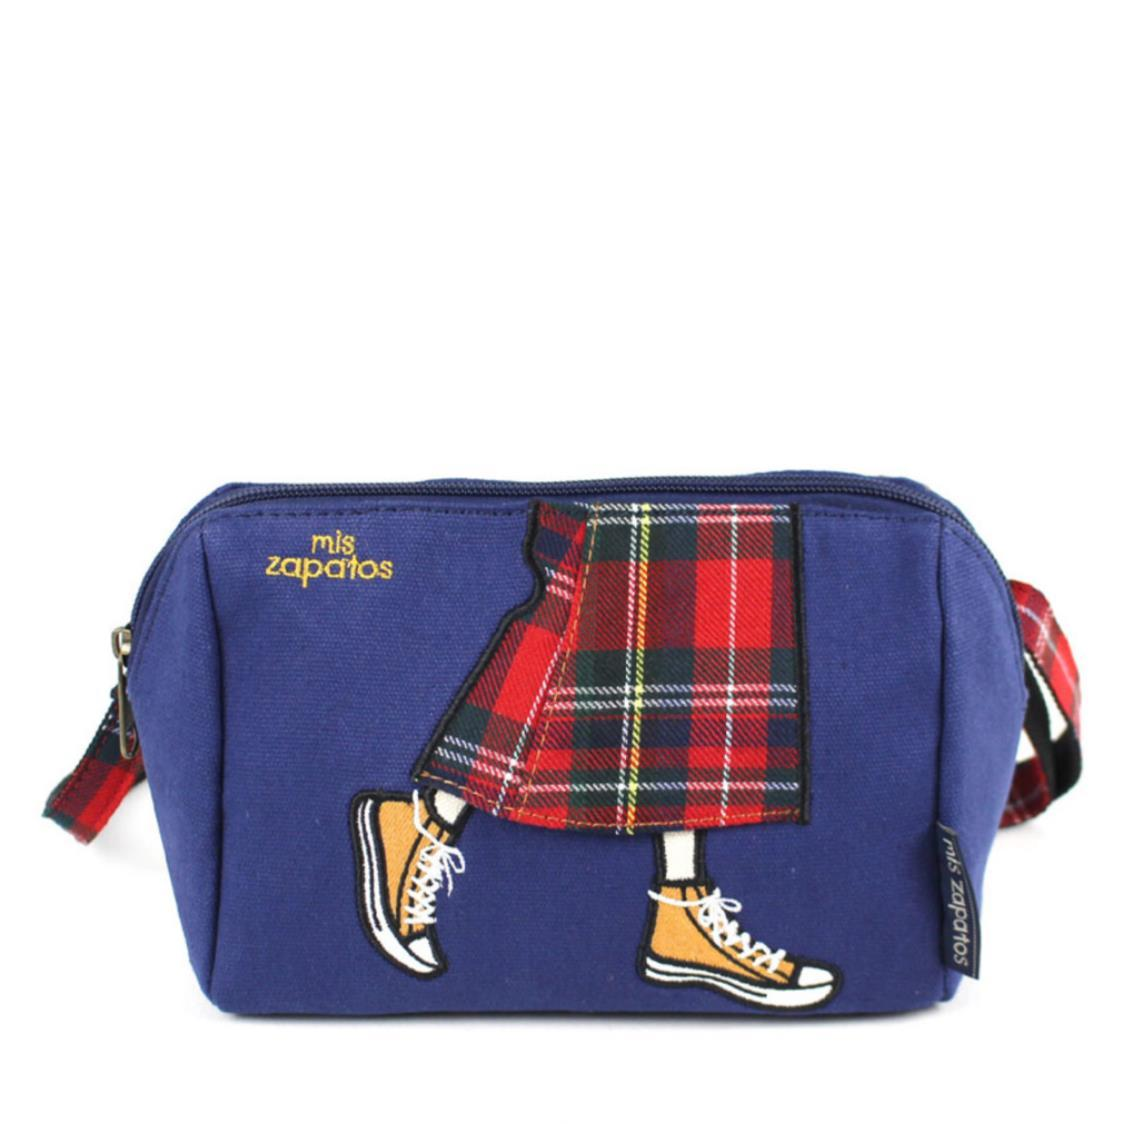 2-Way Use Jeans Skirt with Sneakers Slingbag Navy